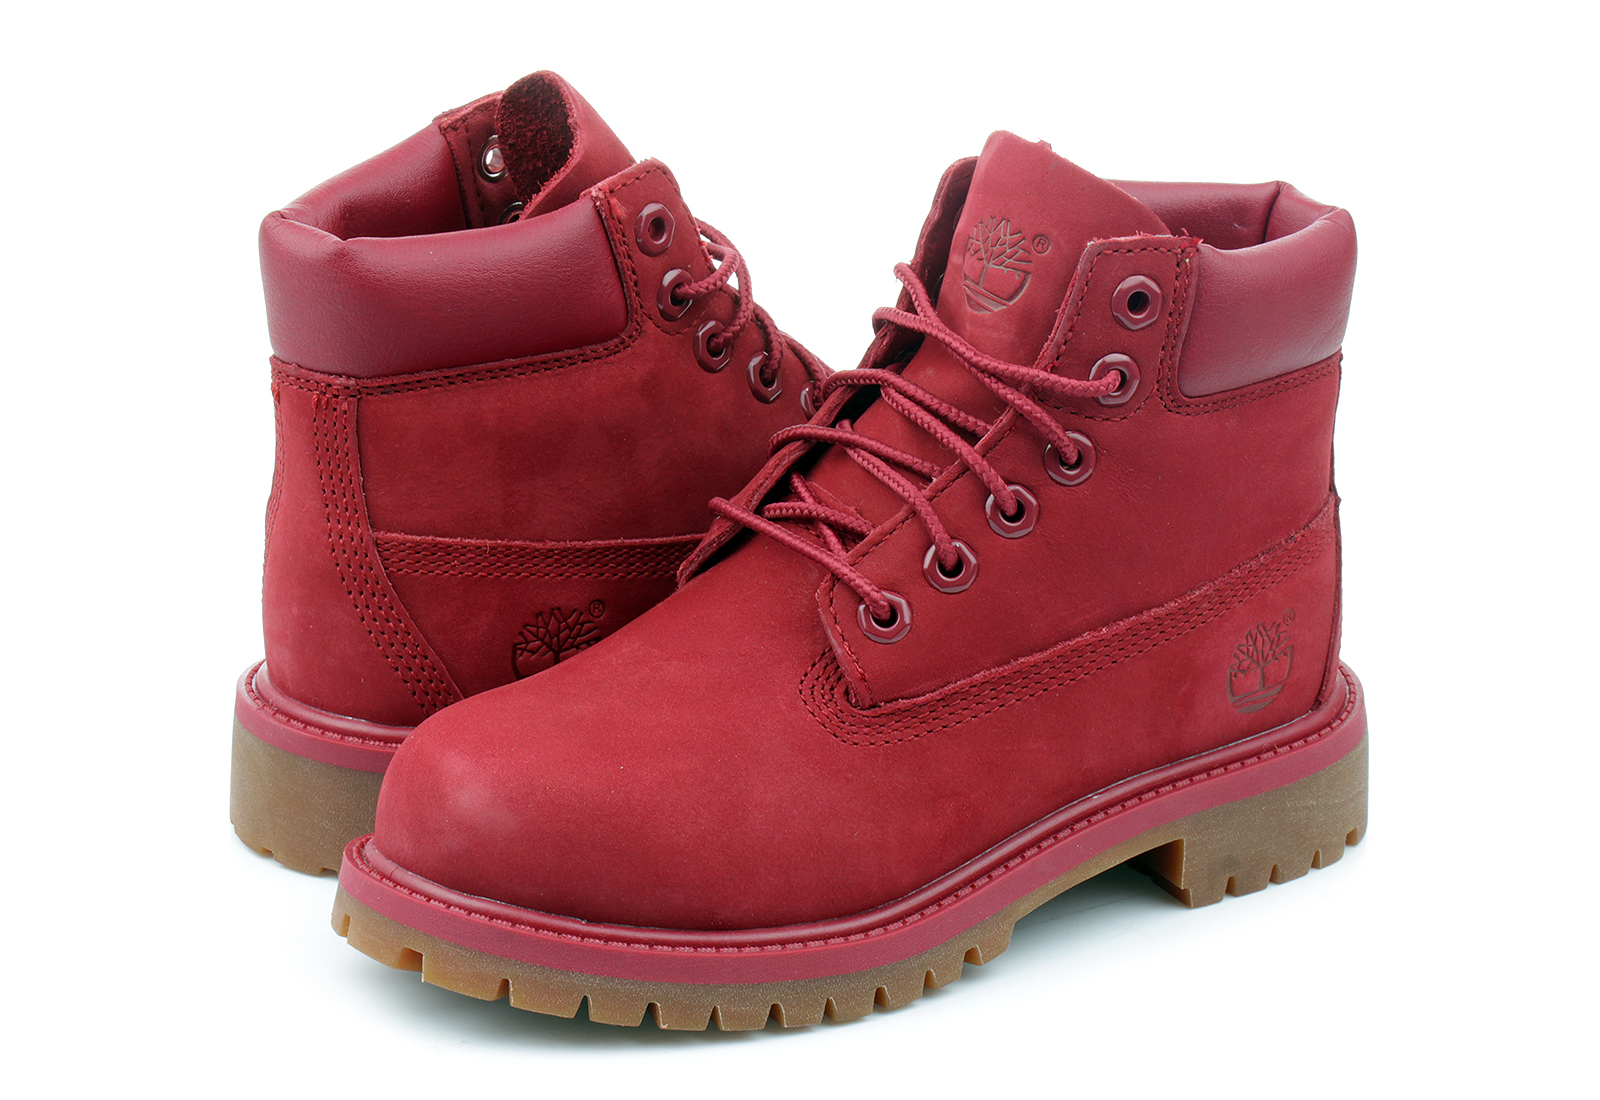 Timberland Bakancs - 6 Inch Prem Boot - a14te-red - Office Shoes ... 2a8cc9d98f